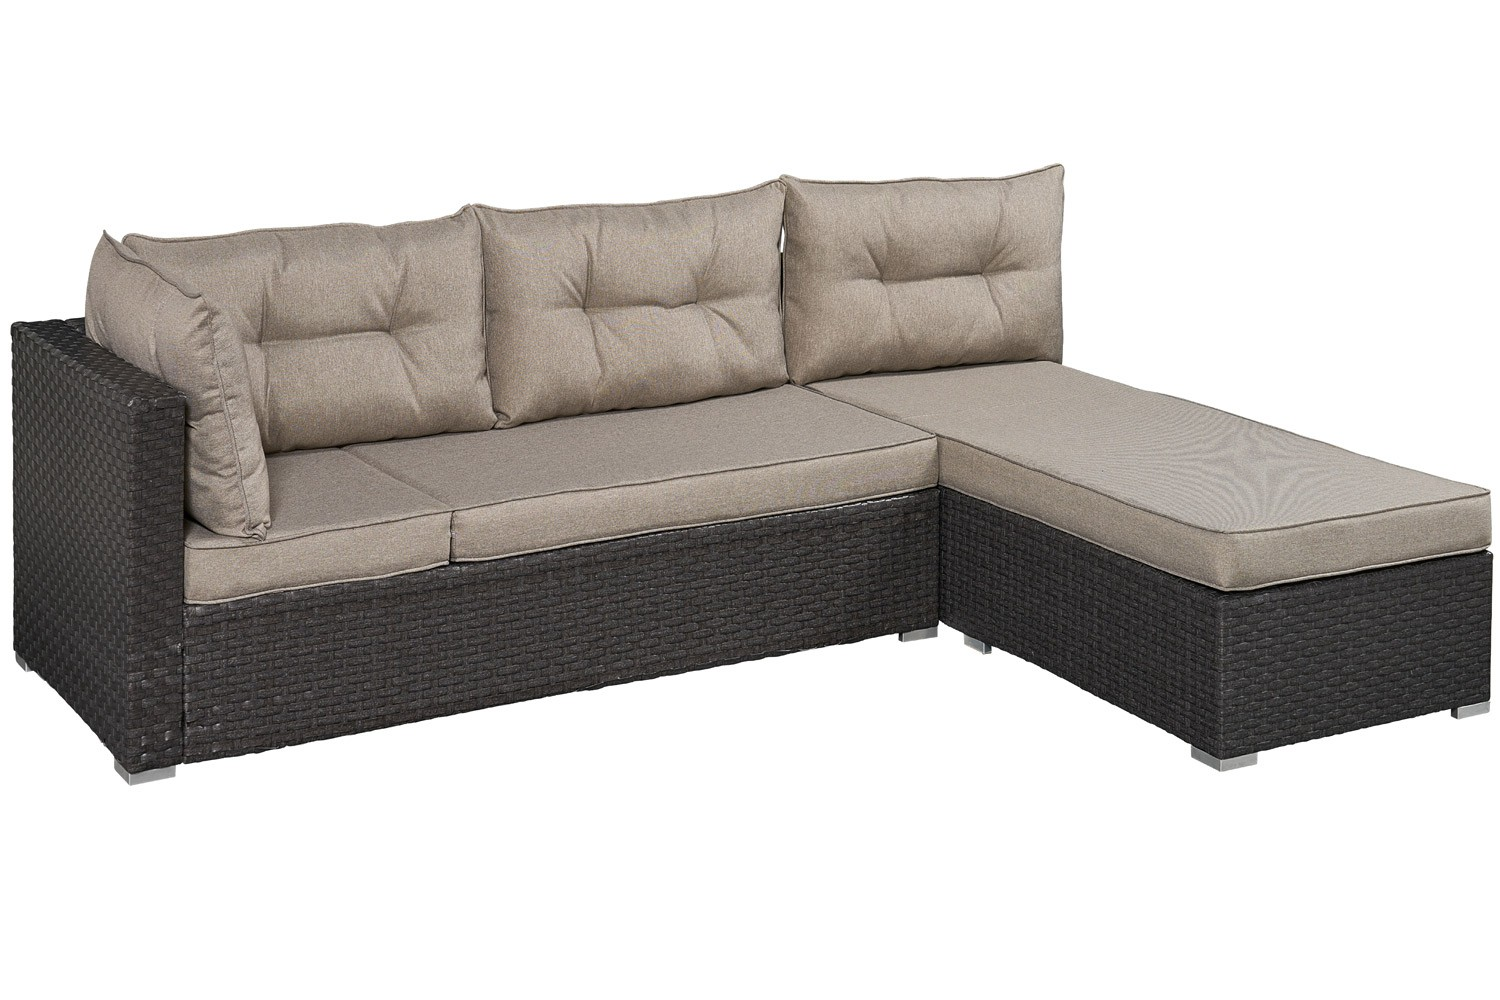 albion sofa reviews kivik three seat and chaise longue shipping futons to california futon beds delivered